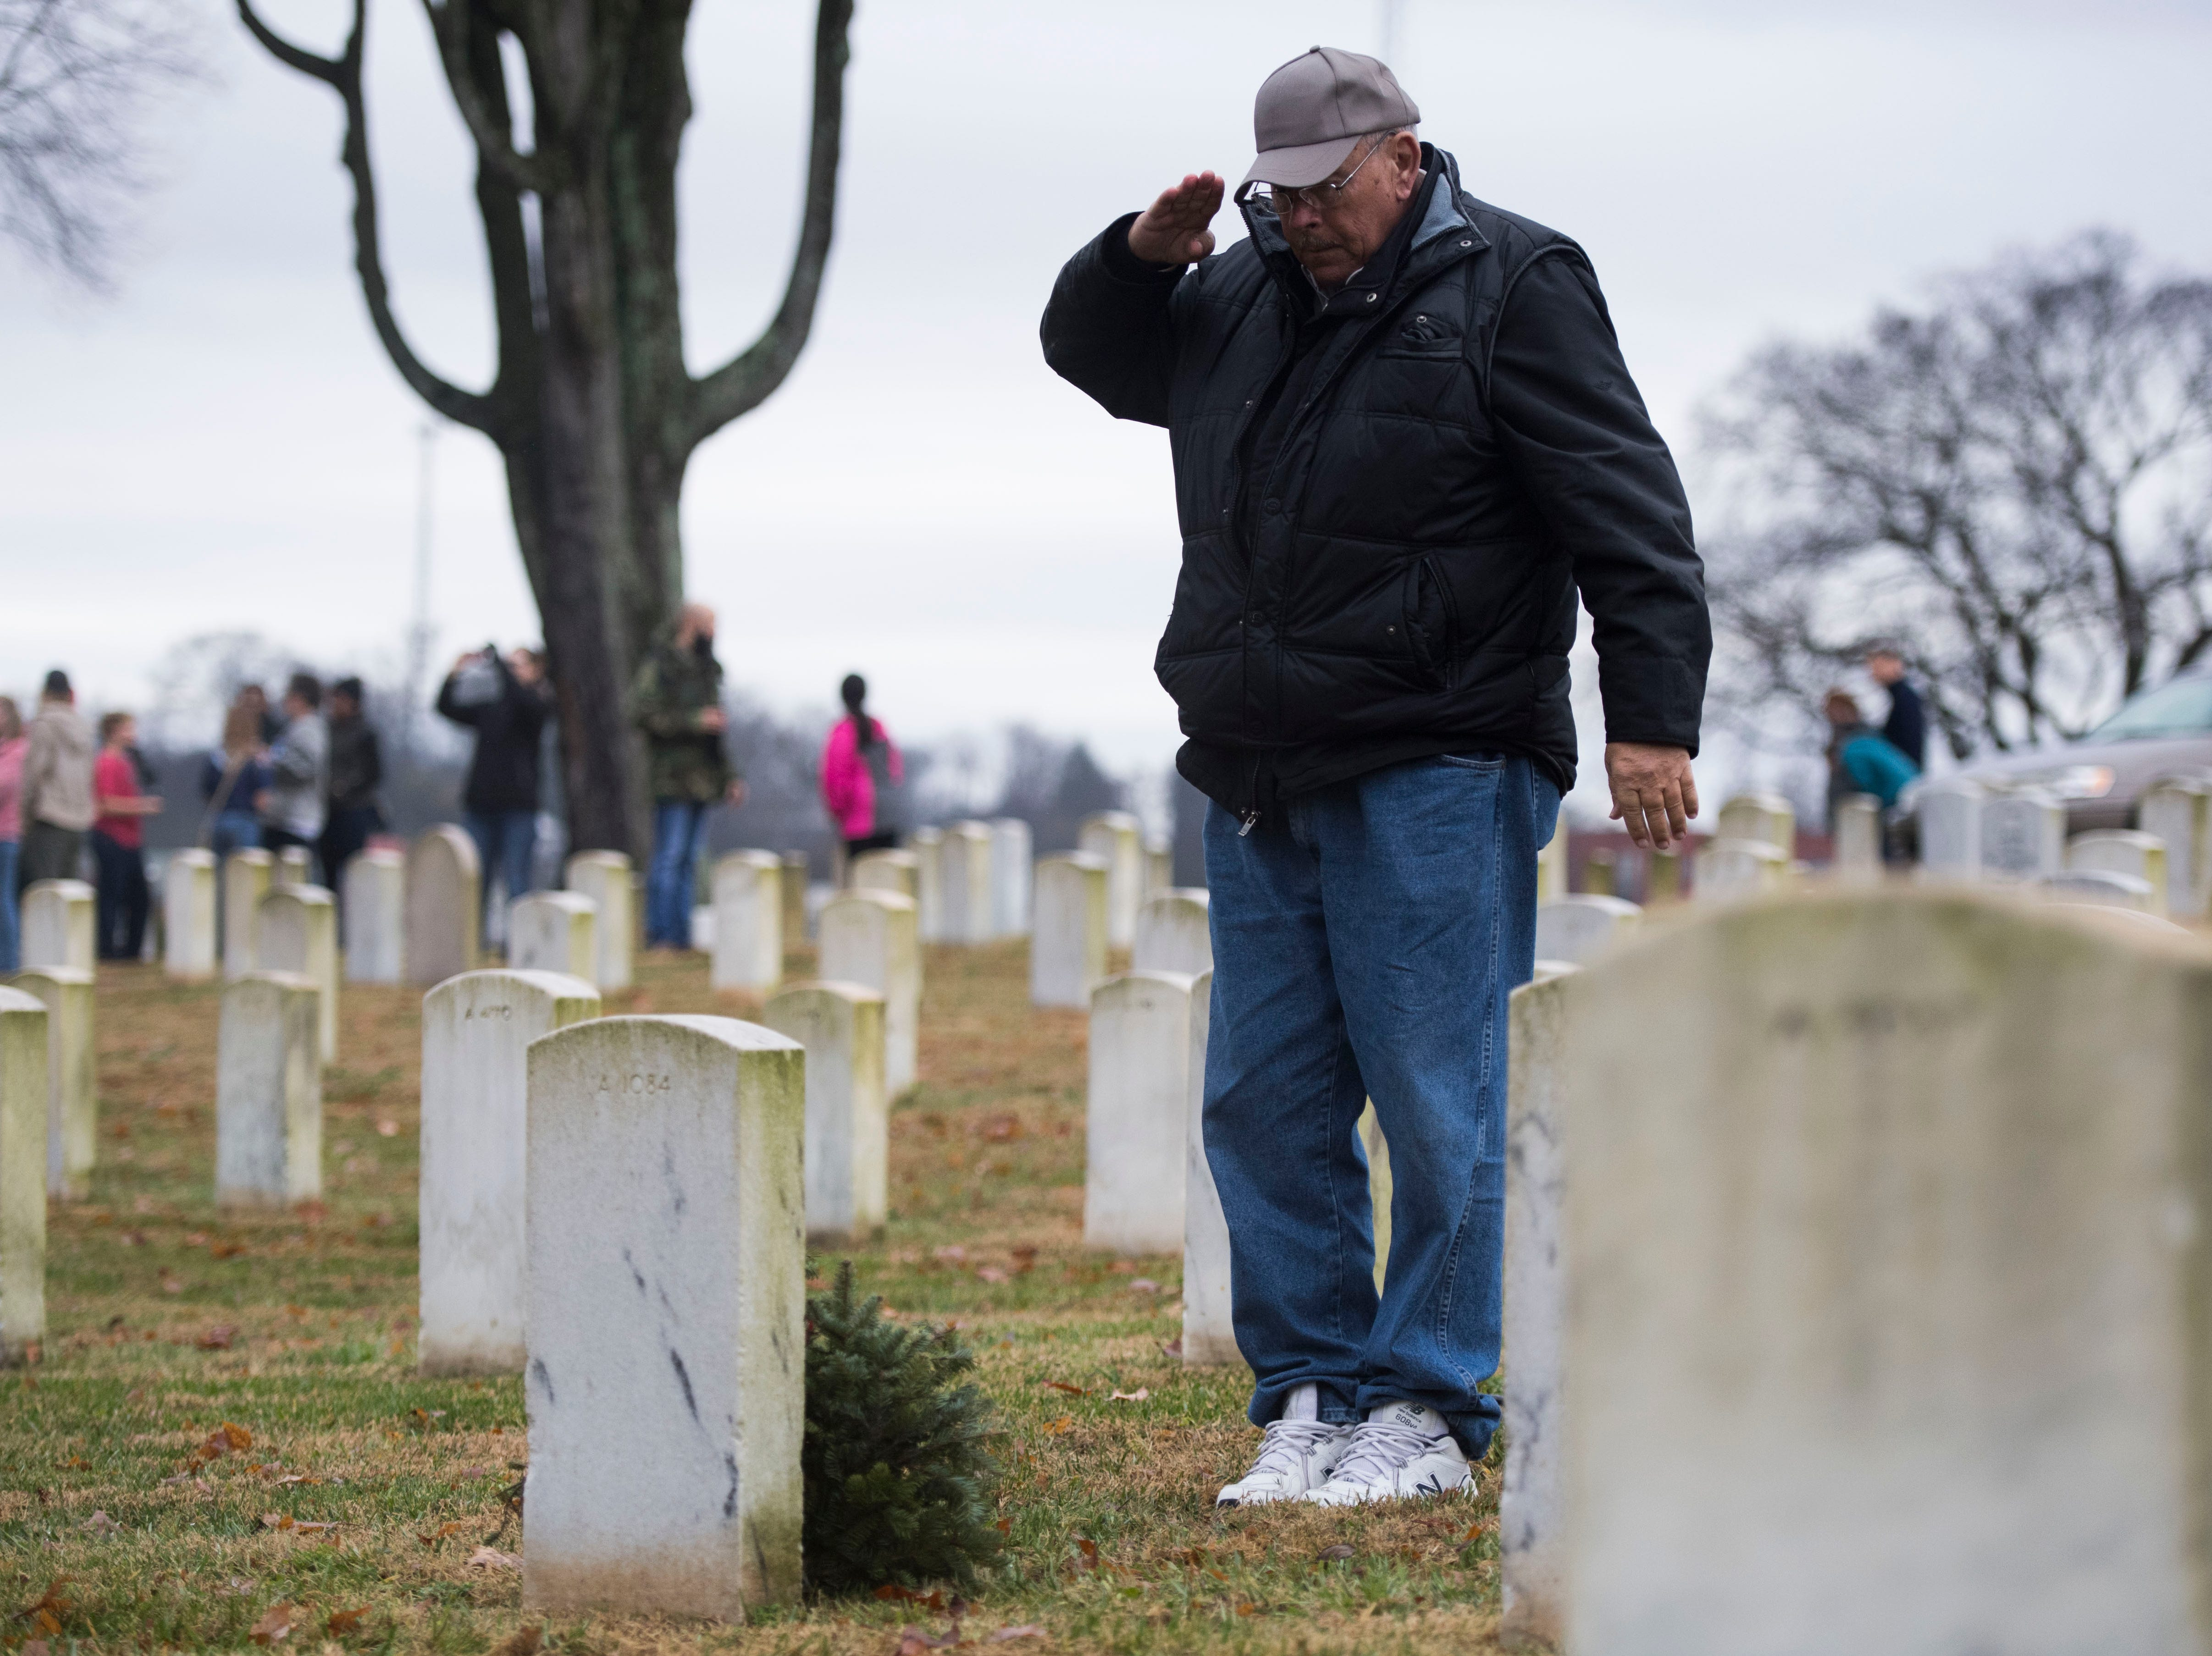 David Bounds of Athens, who retired from the Air National Guard, salutes a headstone during a Wreaths Across America ceremony at Knoxville National Cemetery north of downtown Knoxville Saturday, Dec. 15, 2018. Evergreen wreaths were placed on veteran headstones.